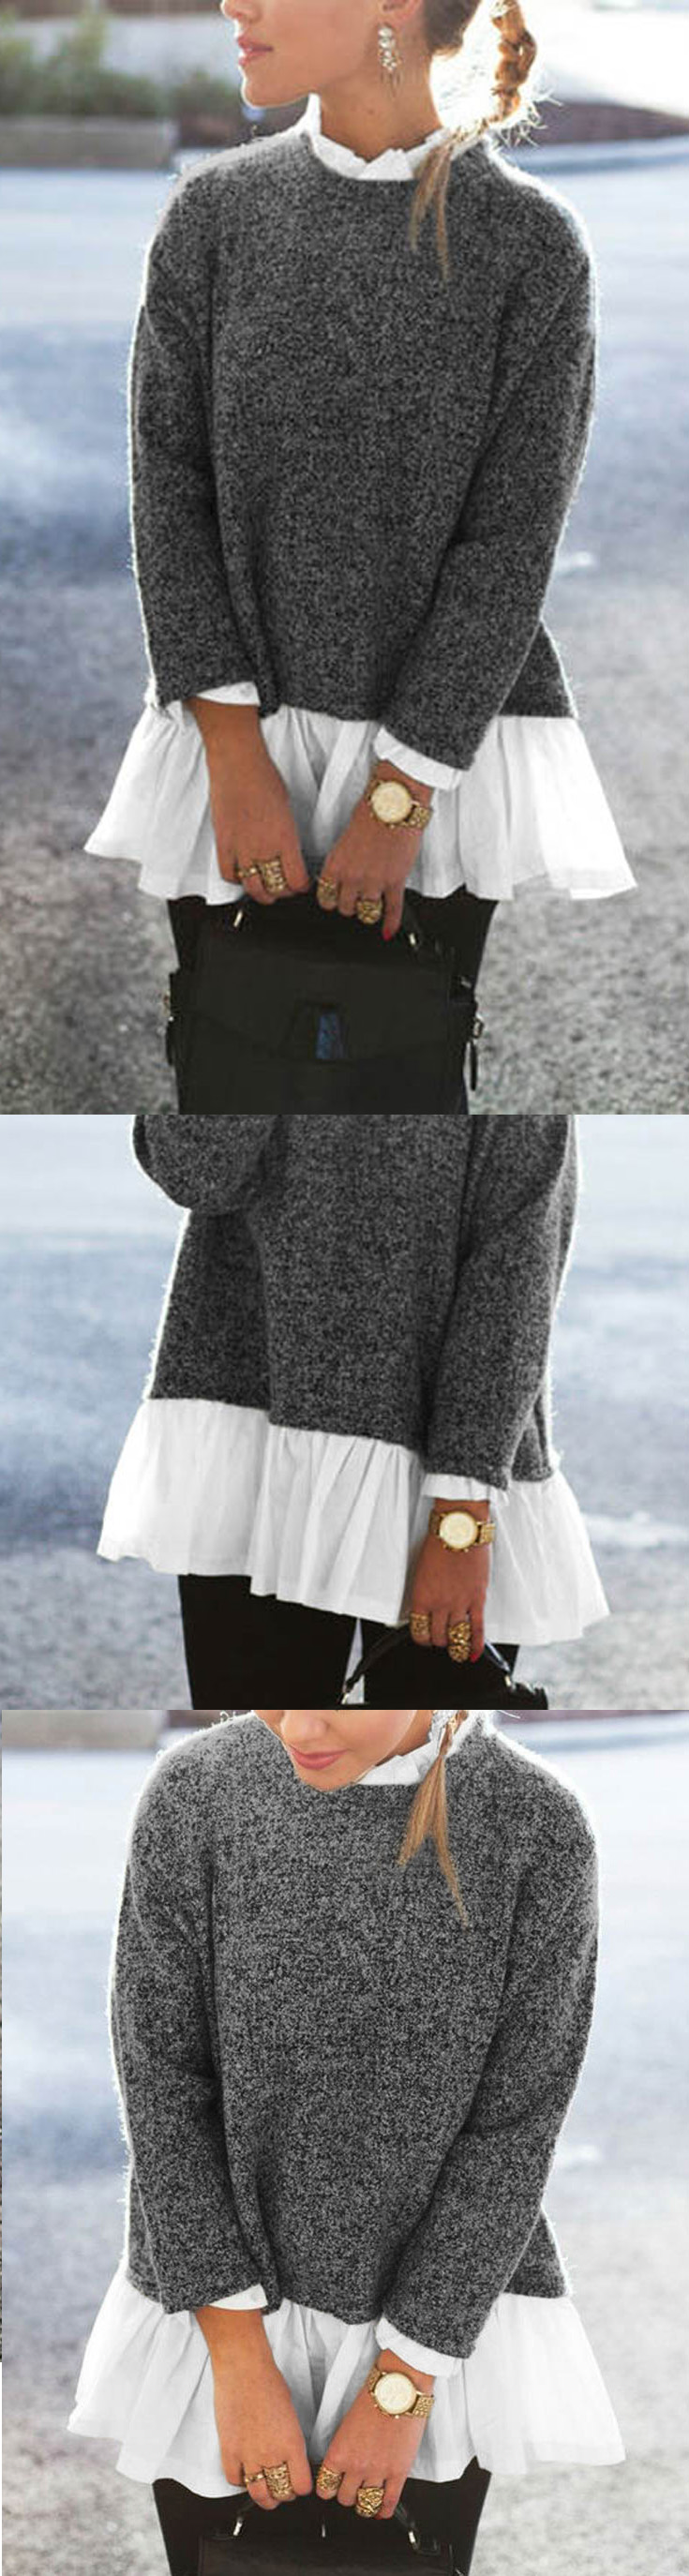 Add a sweet, feminine touch to your look. #womensfashion